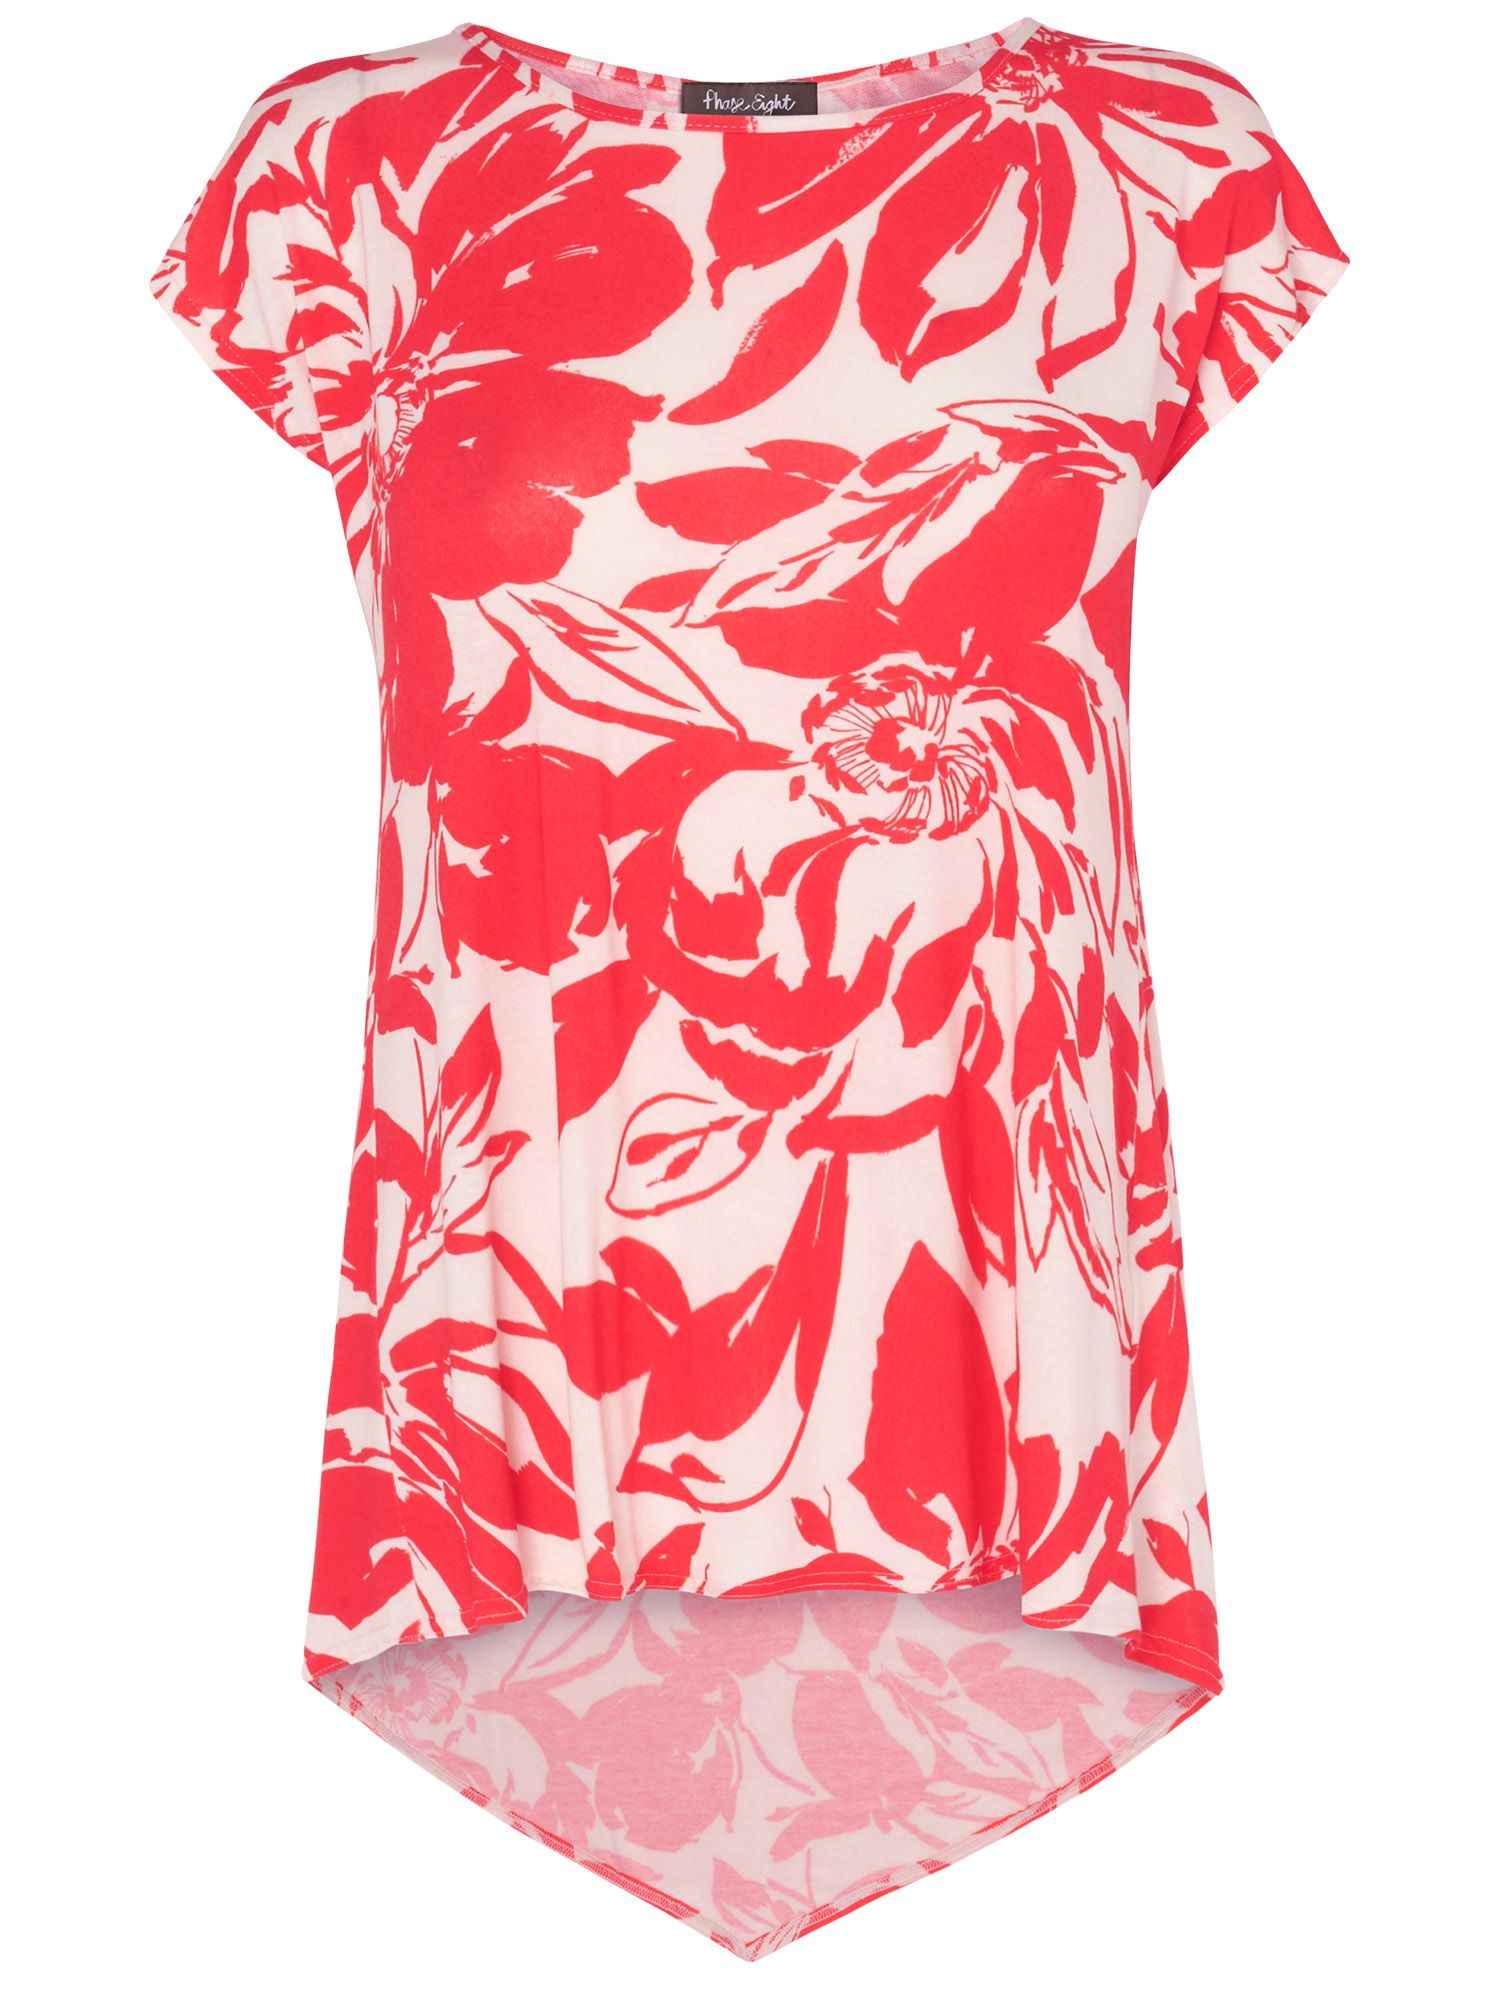 Elenor printed top